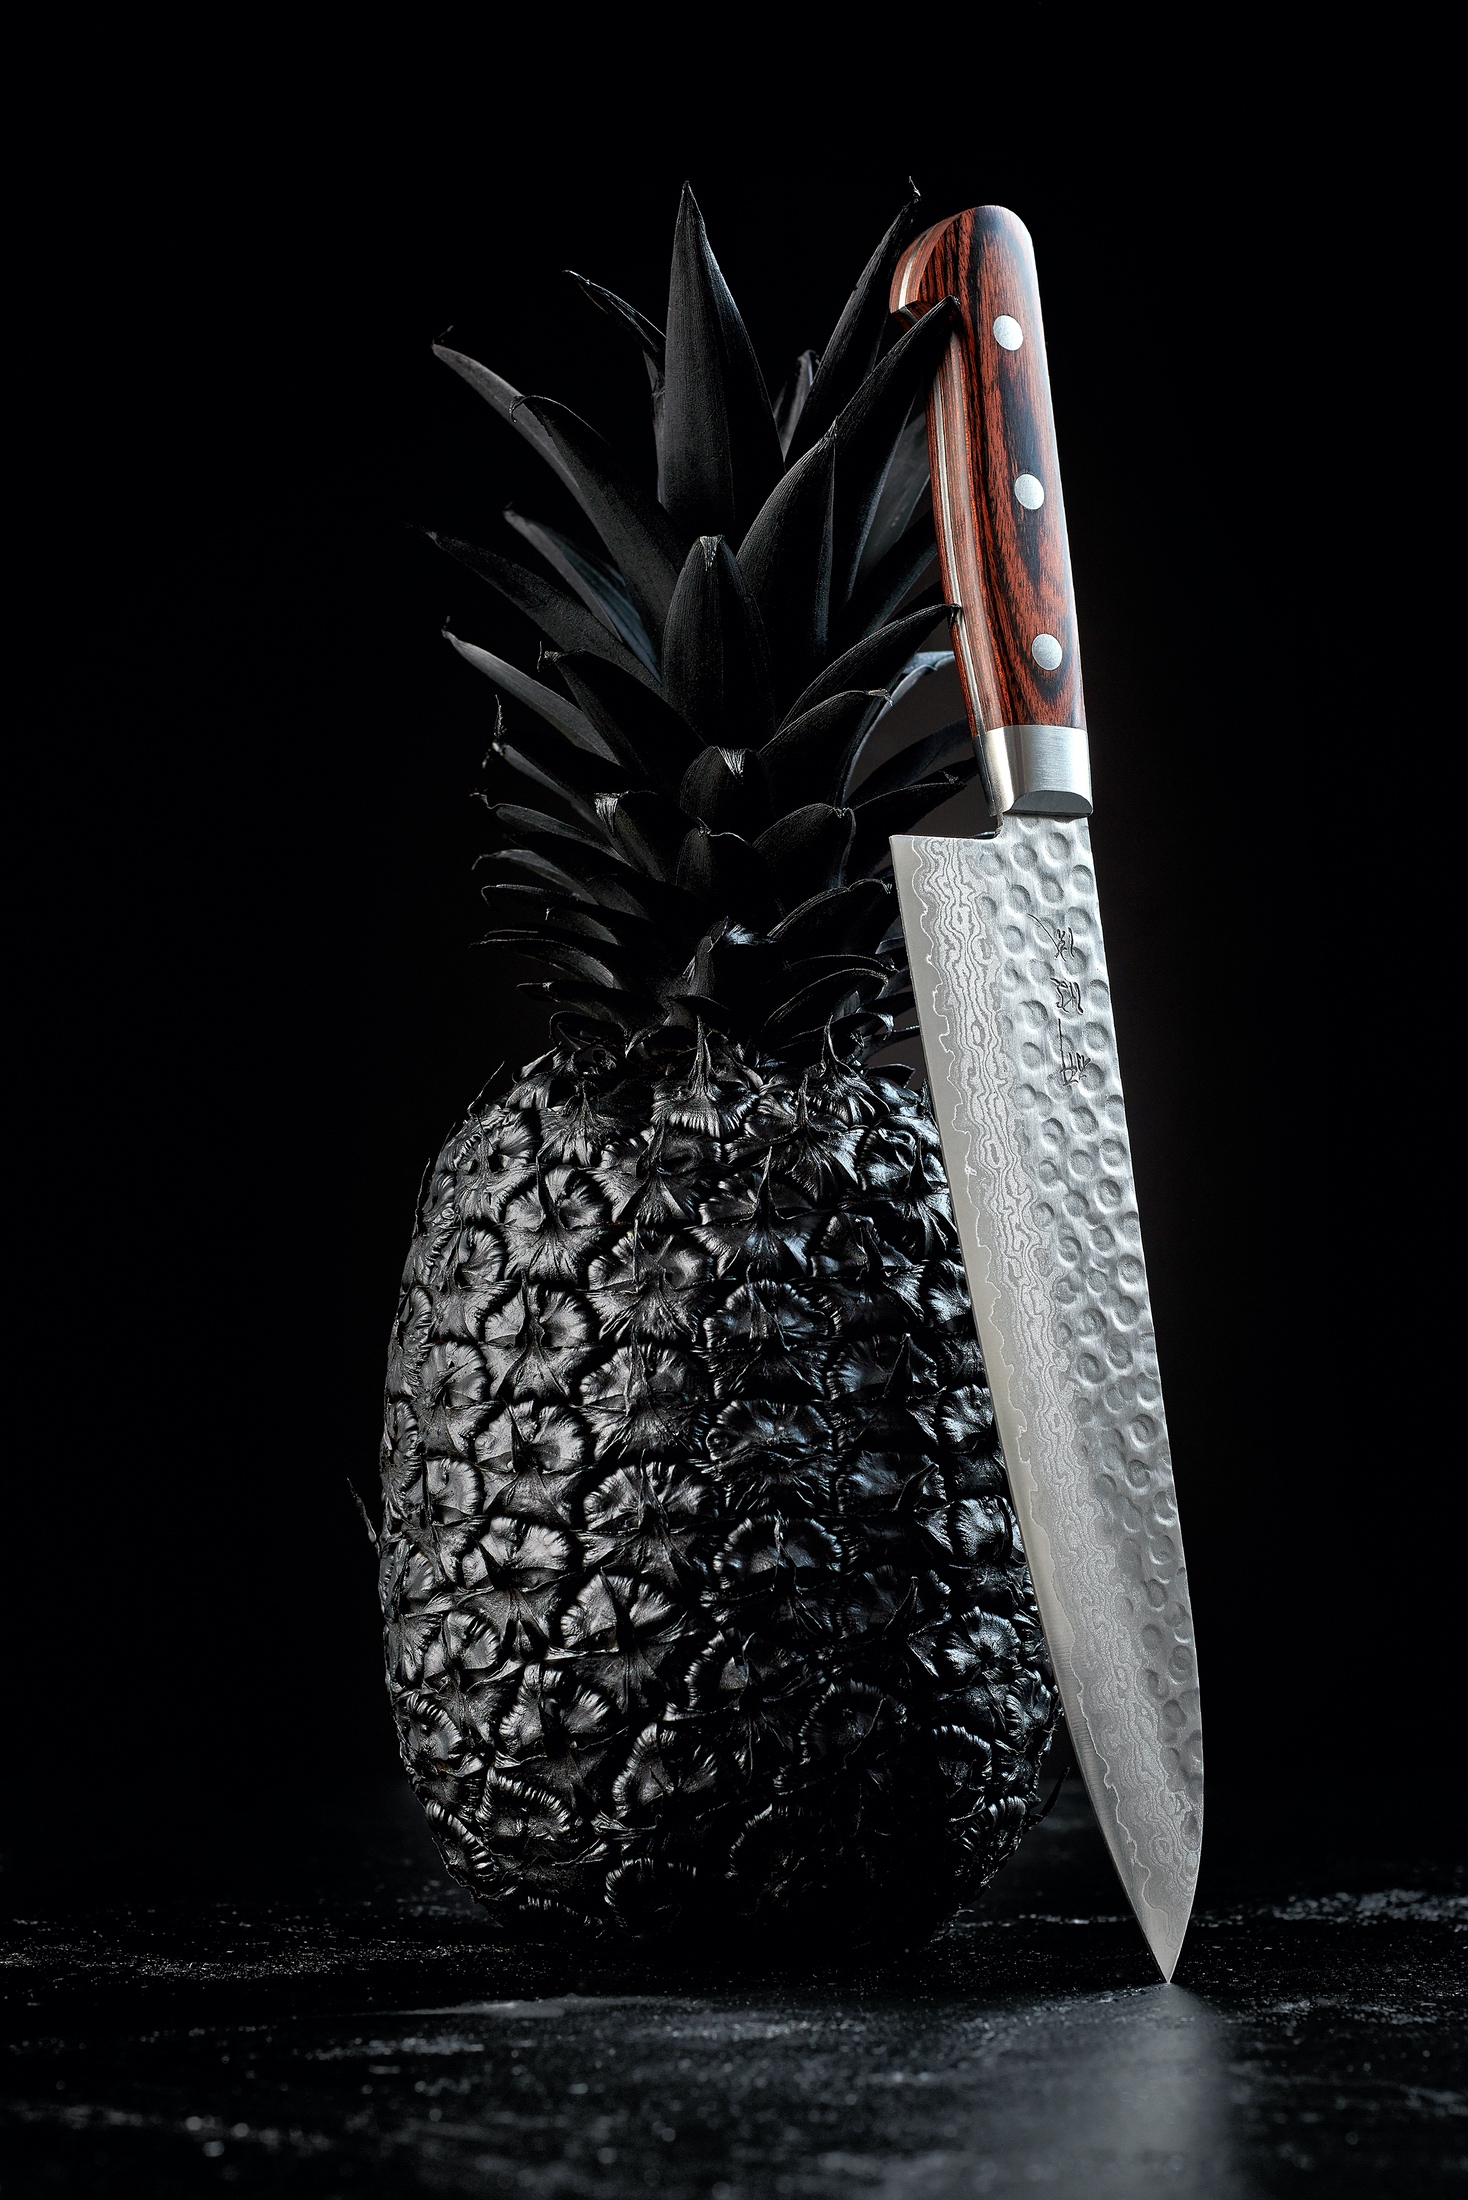 AaronVan_Food_Pineapple_Chef_Knife_ Fine_Art